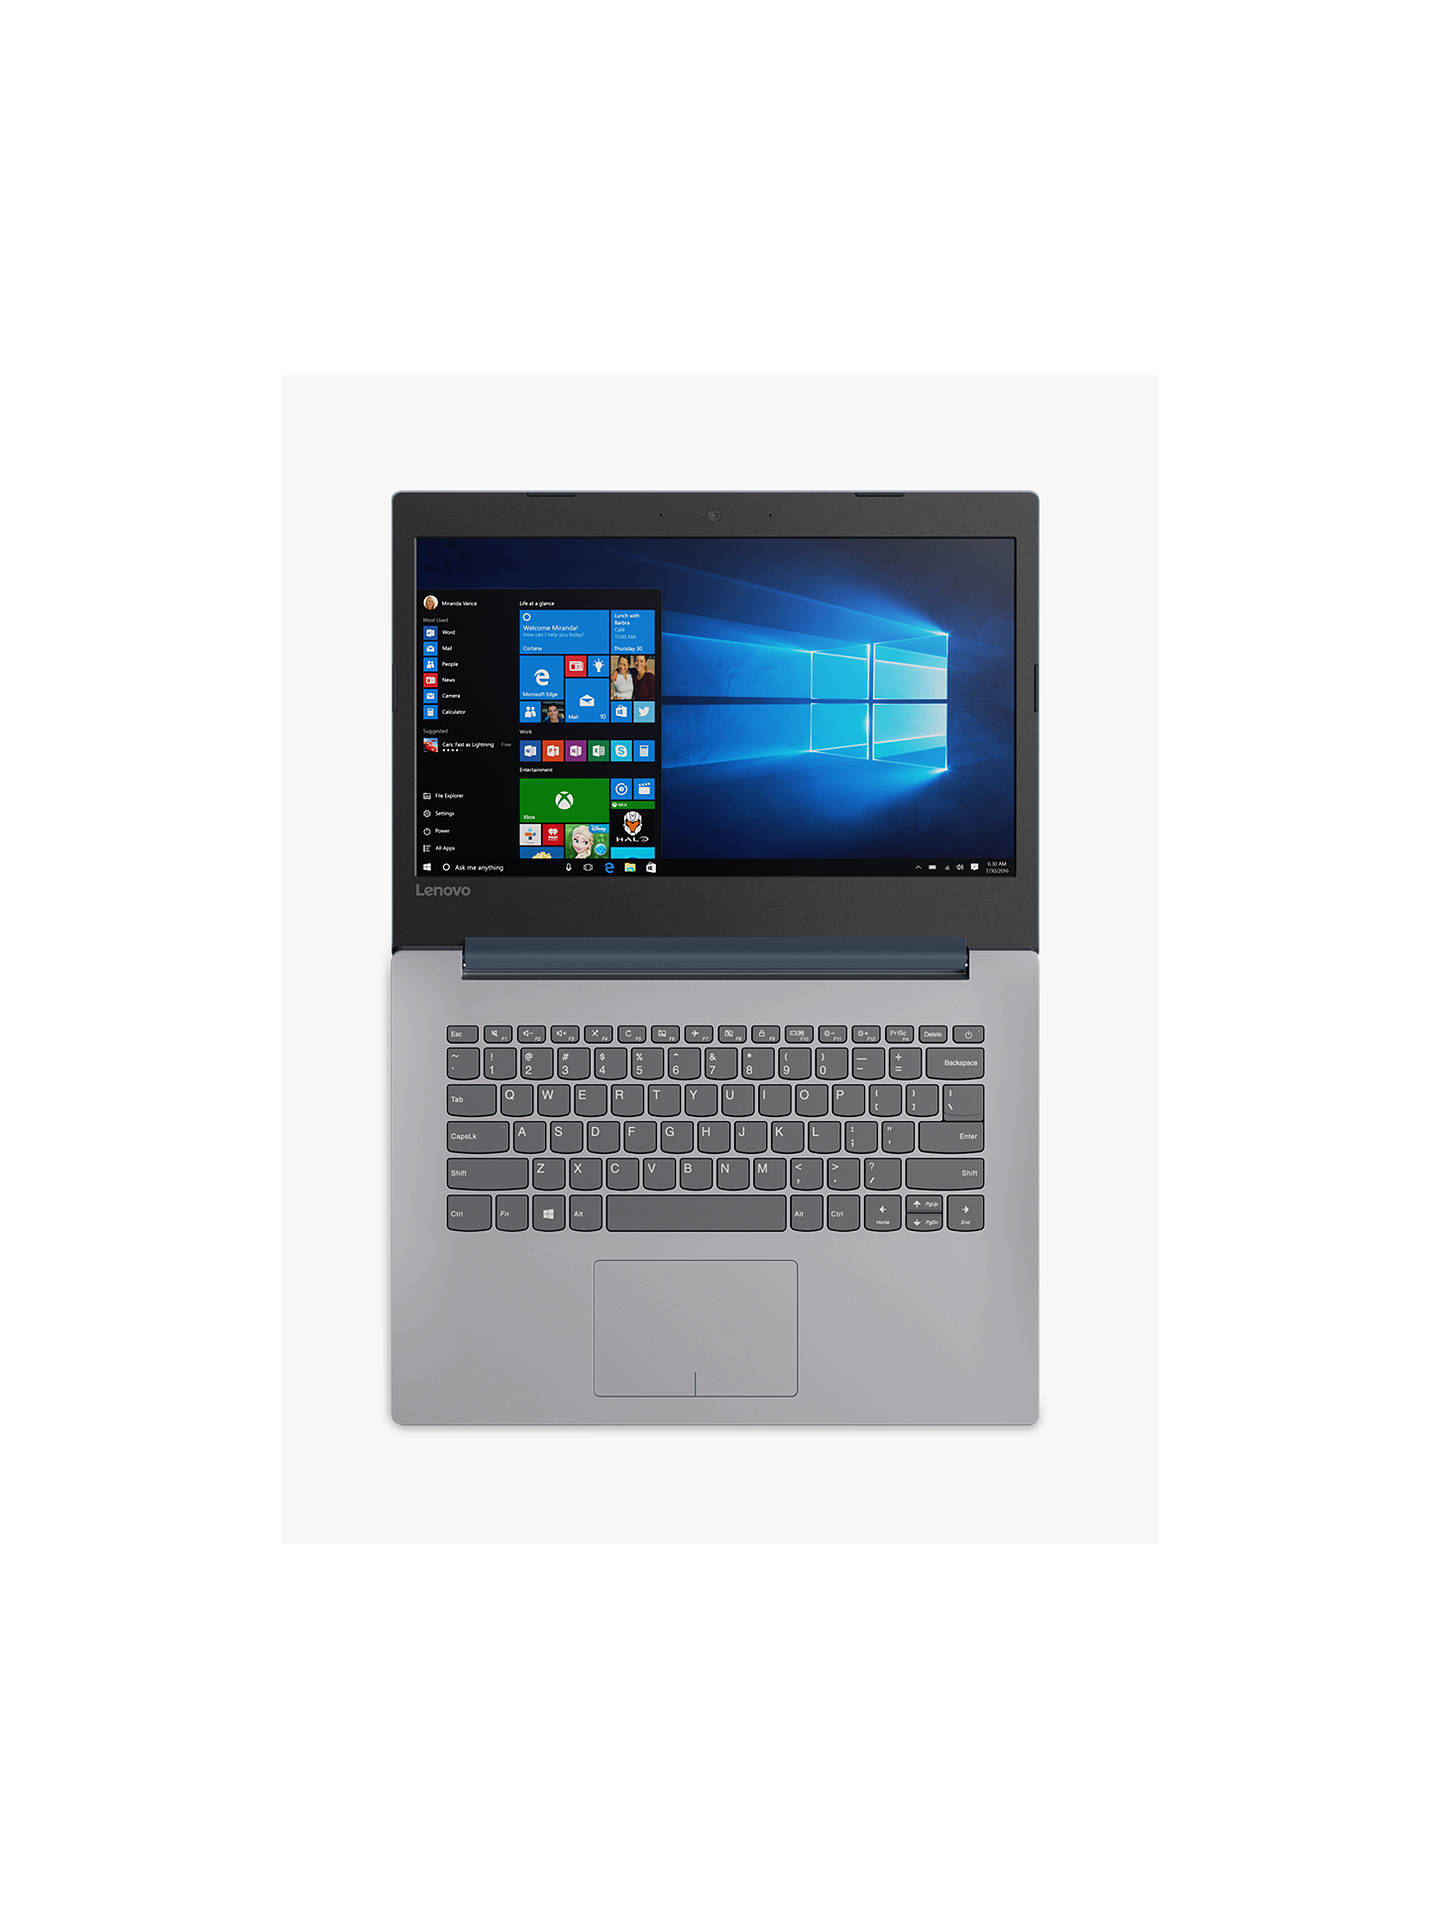 Lenovo IdeaPad 320 Laptop, Intel Core i5, 8GB, 128GB SSD, 14